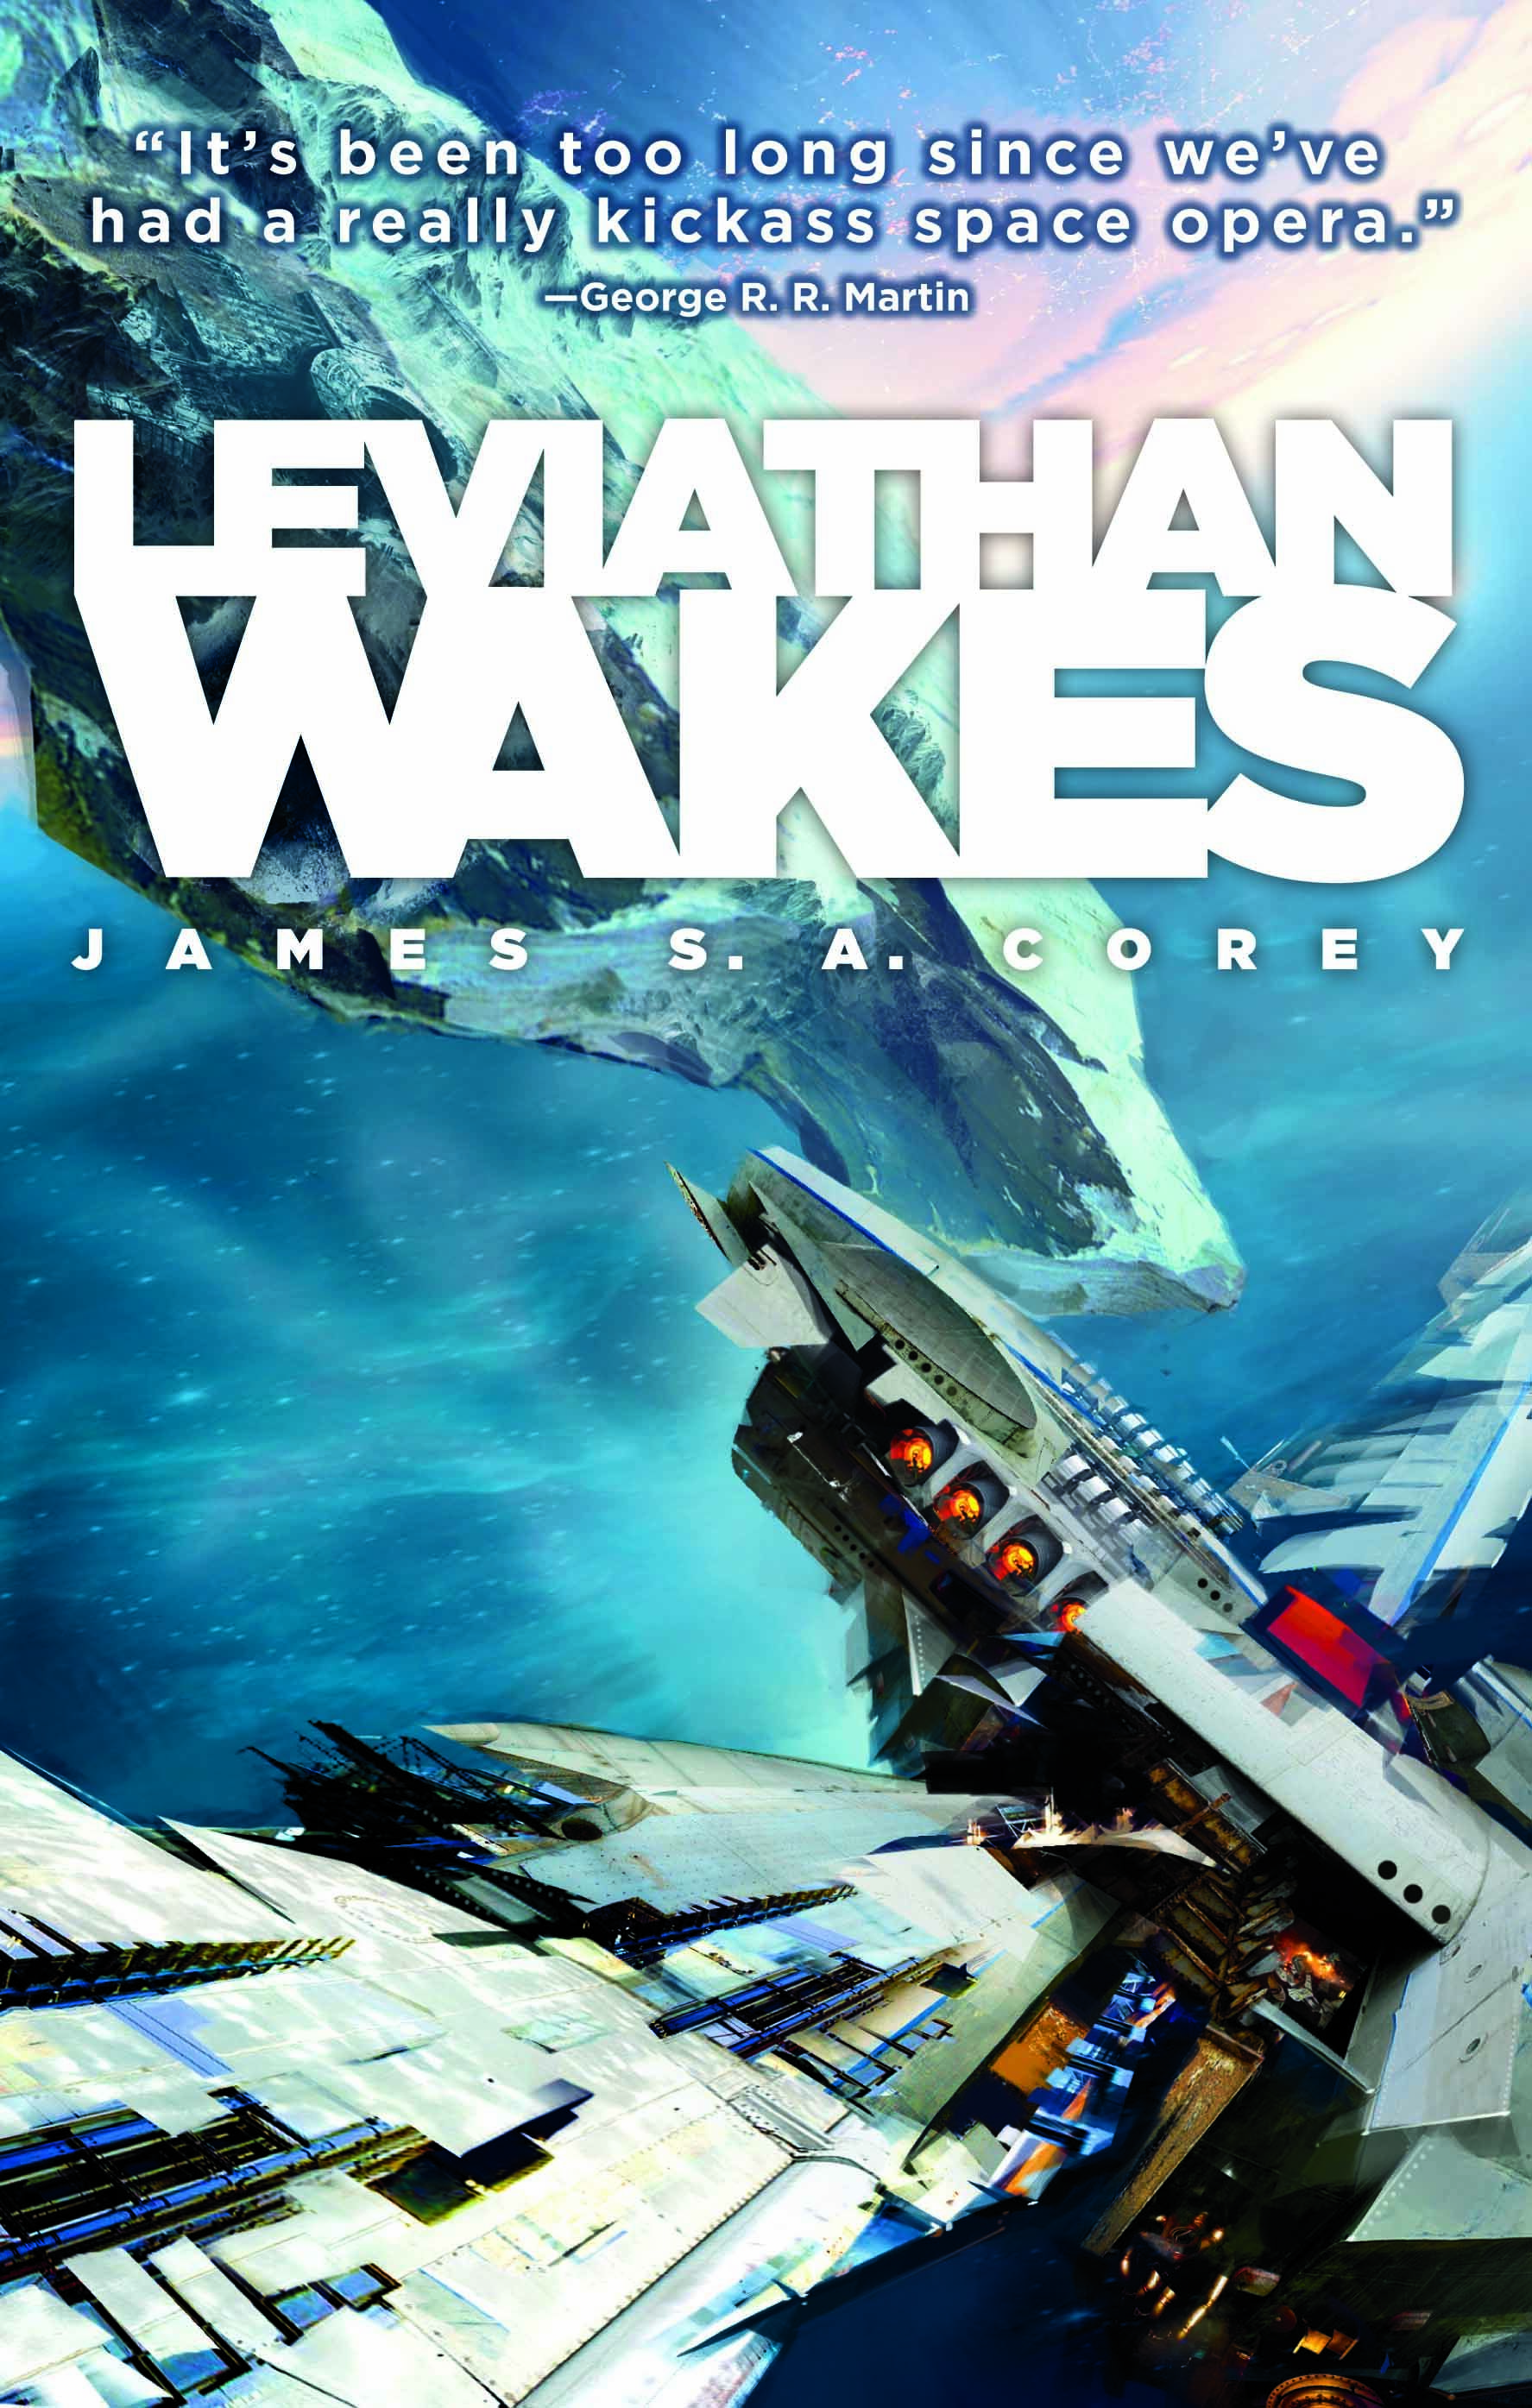 Download Leviathan Wept And Other Stories By Daniel Abraham